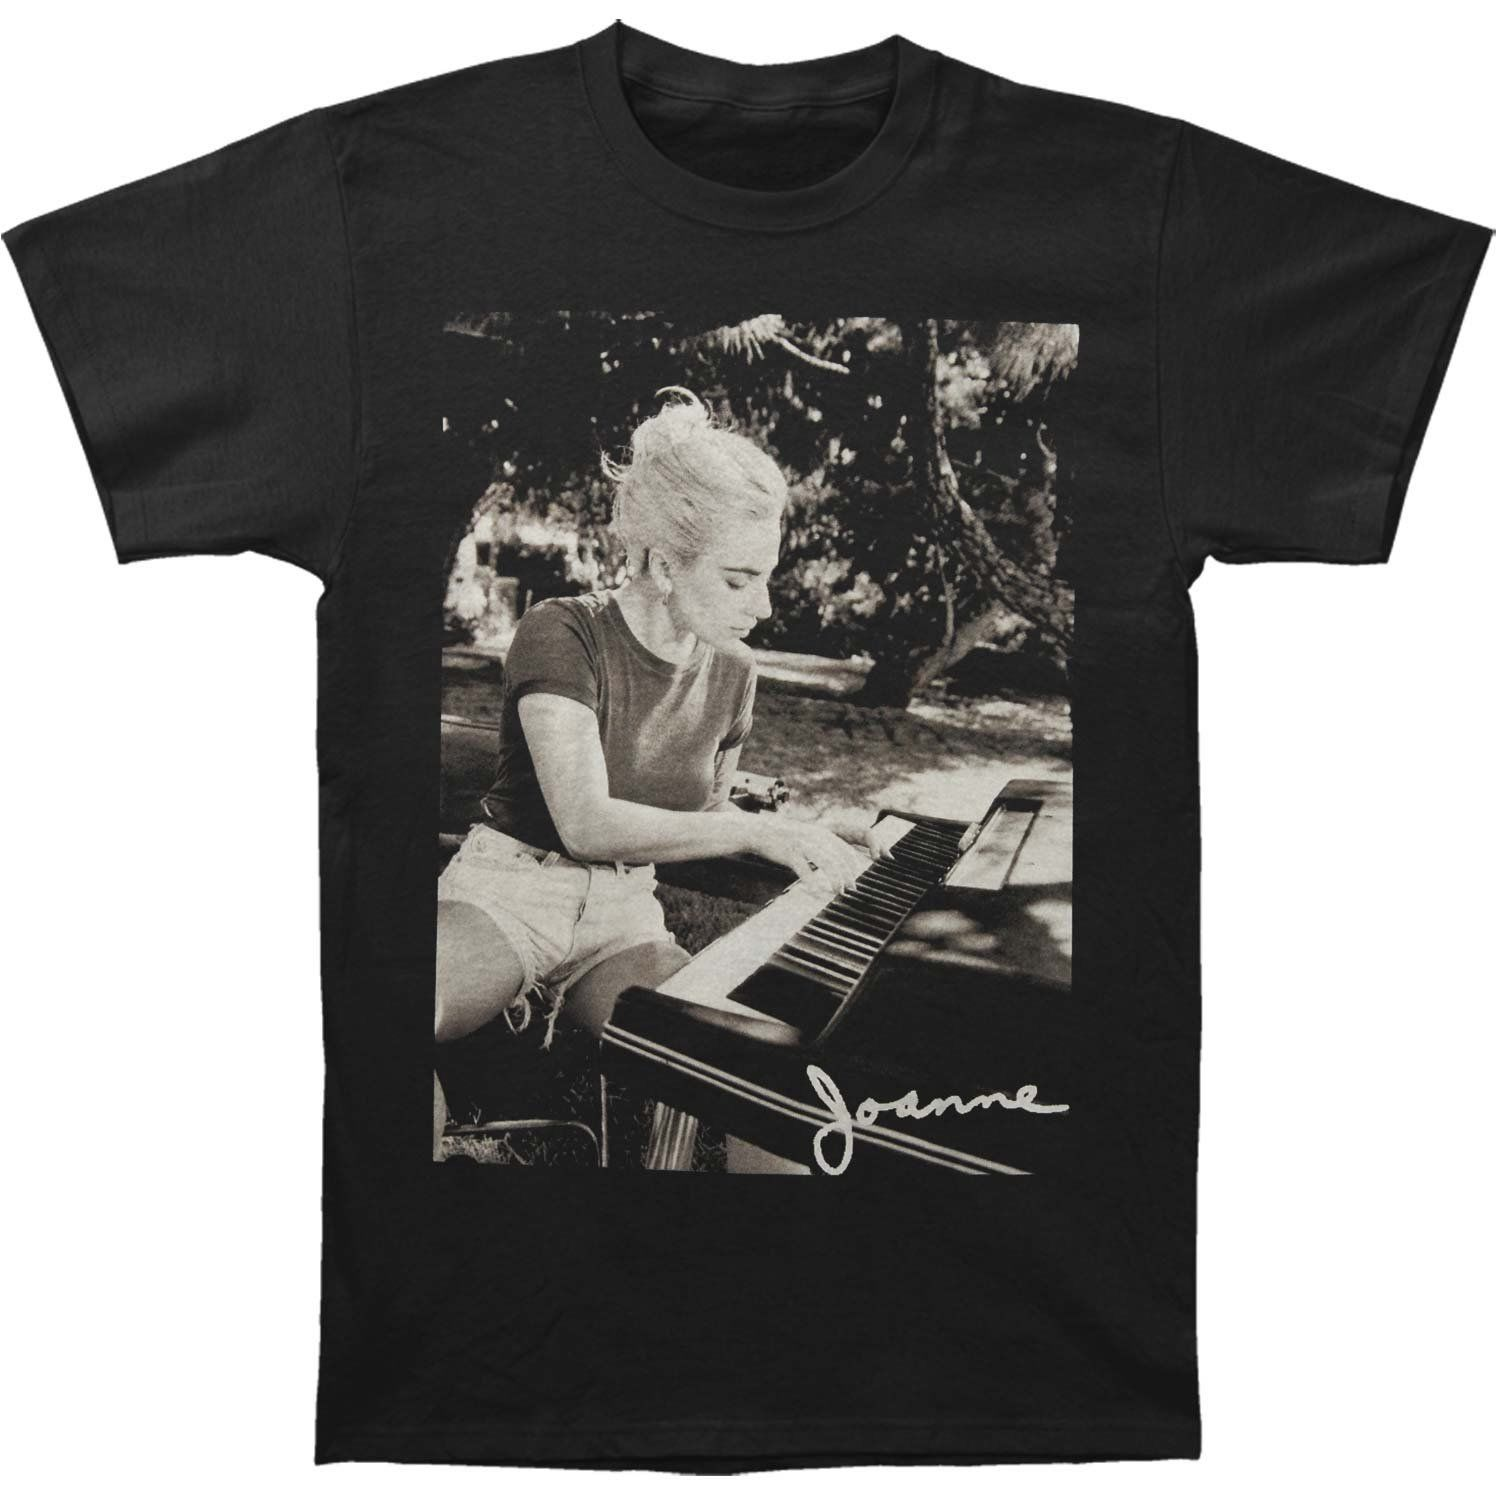 Lady Gaga Mens Joanne Piano Photo Tee T-Shirt Black / White Good Quality Brand Cotton Shirt Summer Style Cool Shirts